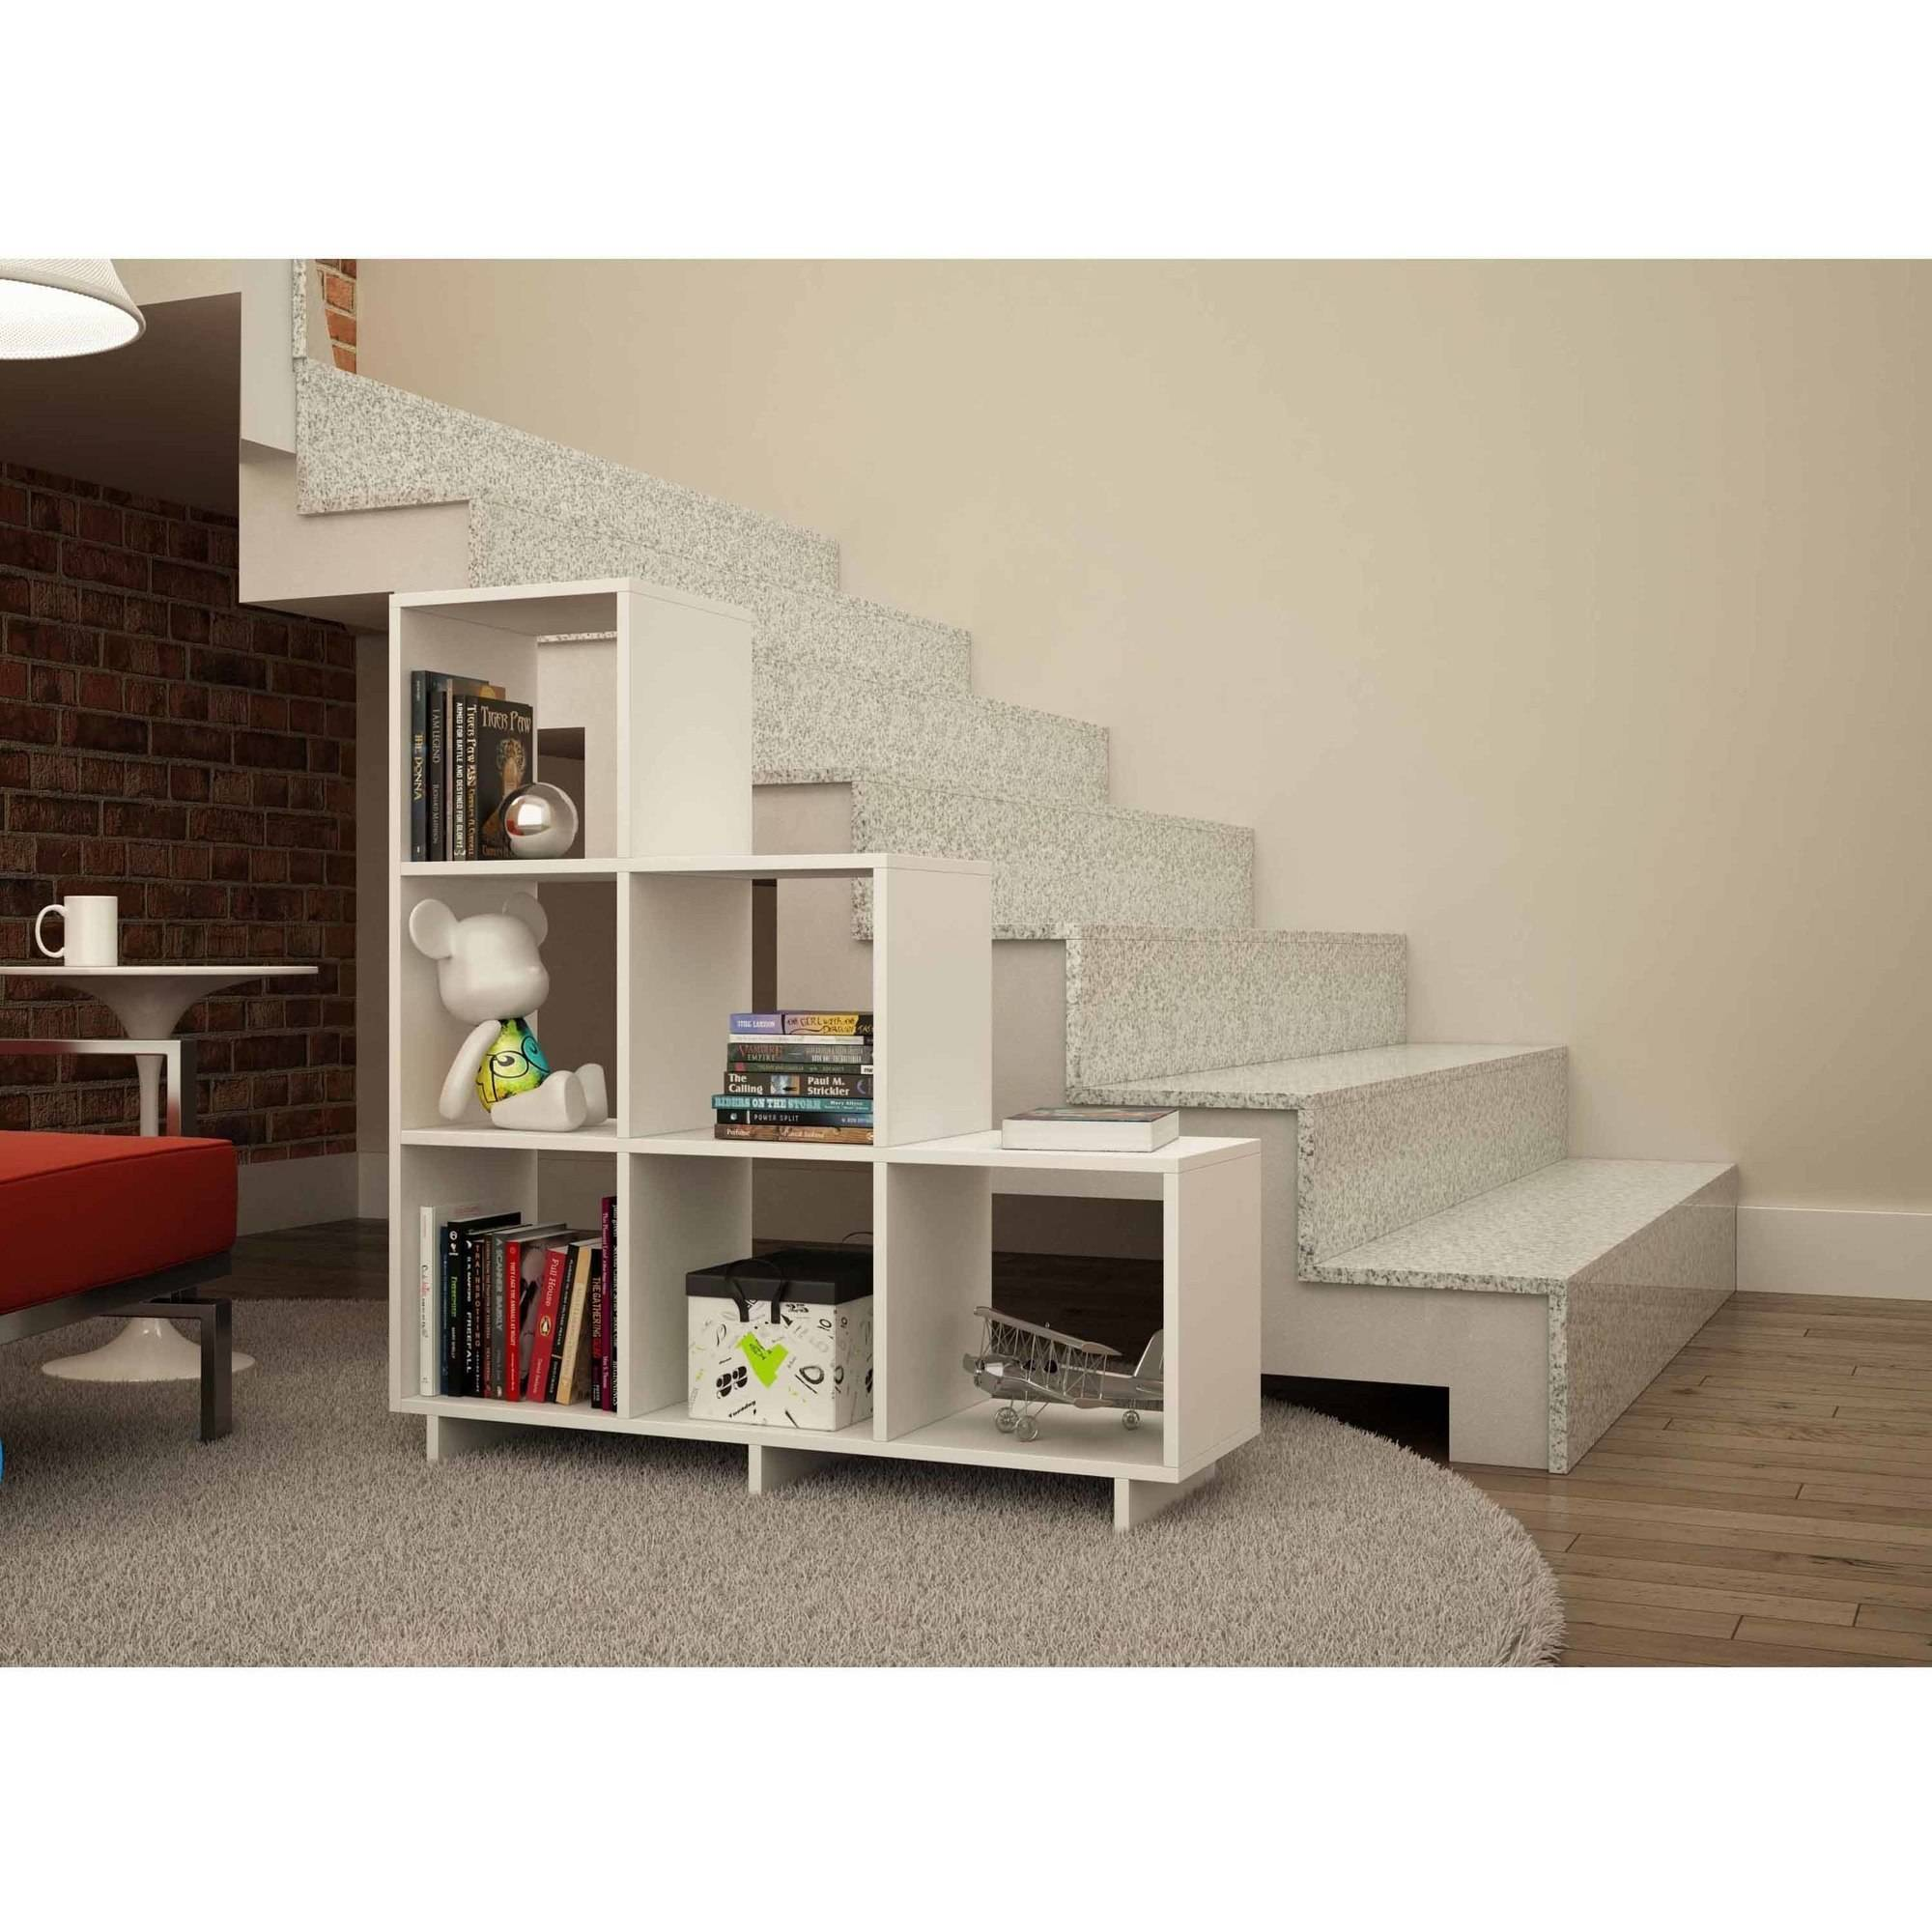 Mendocino Filbert Sophisticated Stair Cubby Bookcase, White